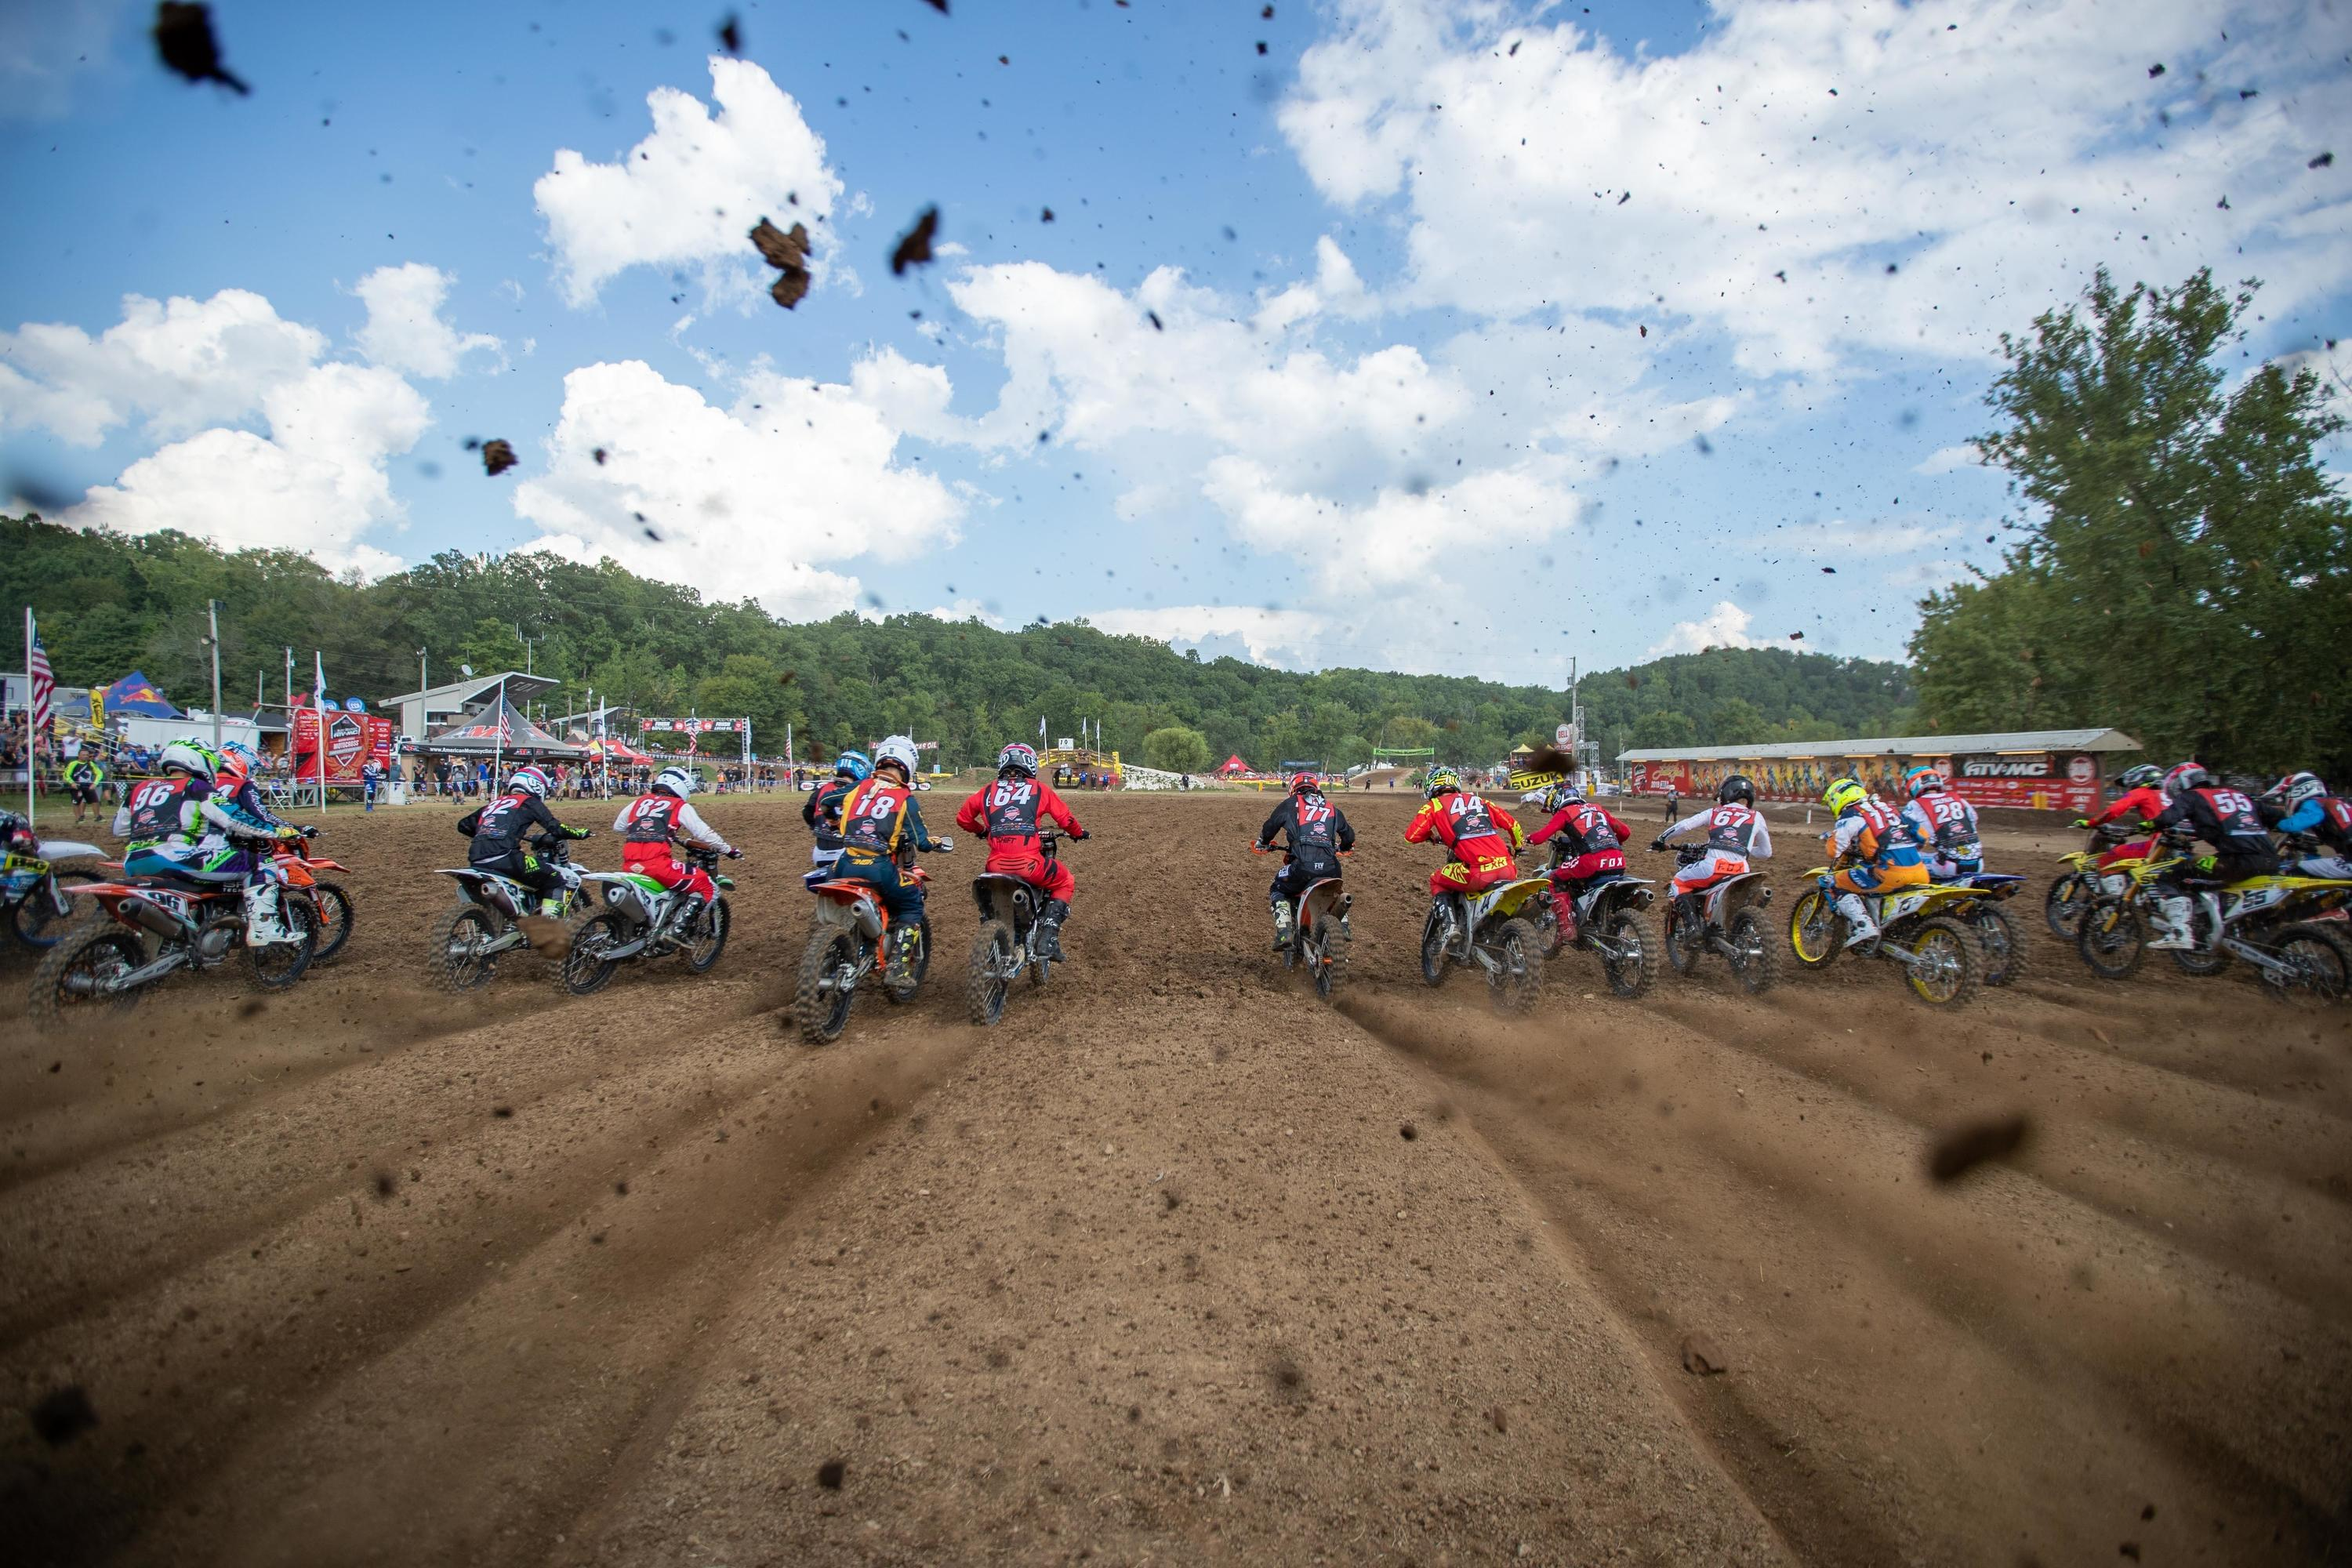 2020 Ama Amateur National Motocross Championship Area Qualifier And Regional Championship Dates Announced Mx Sports